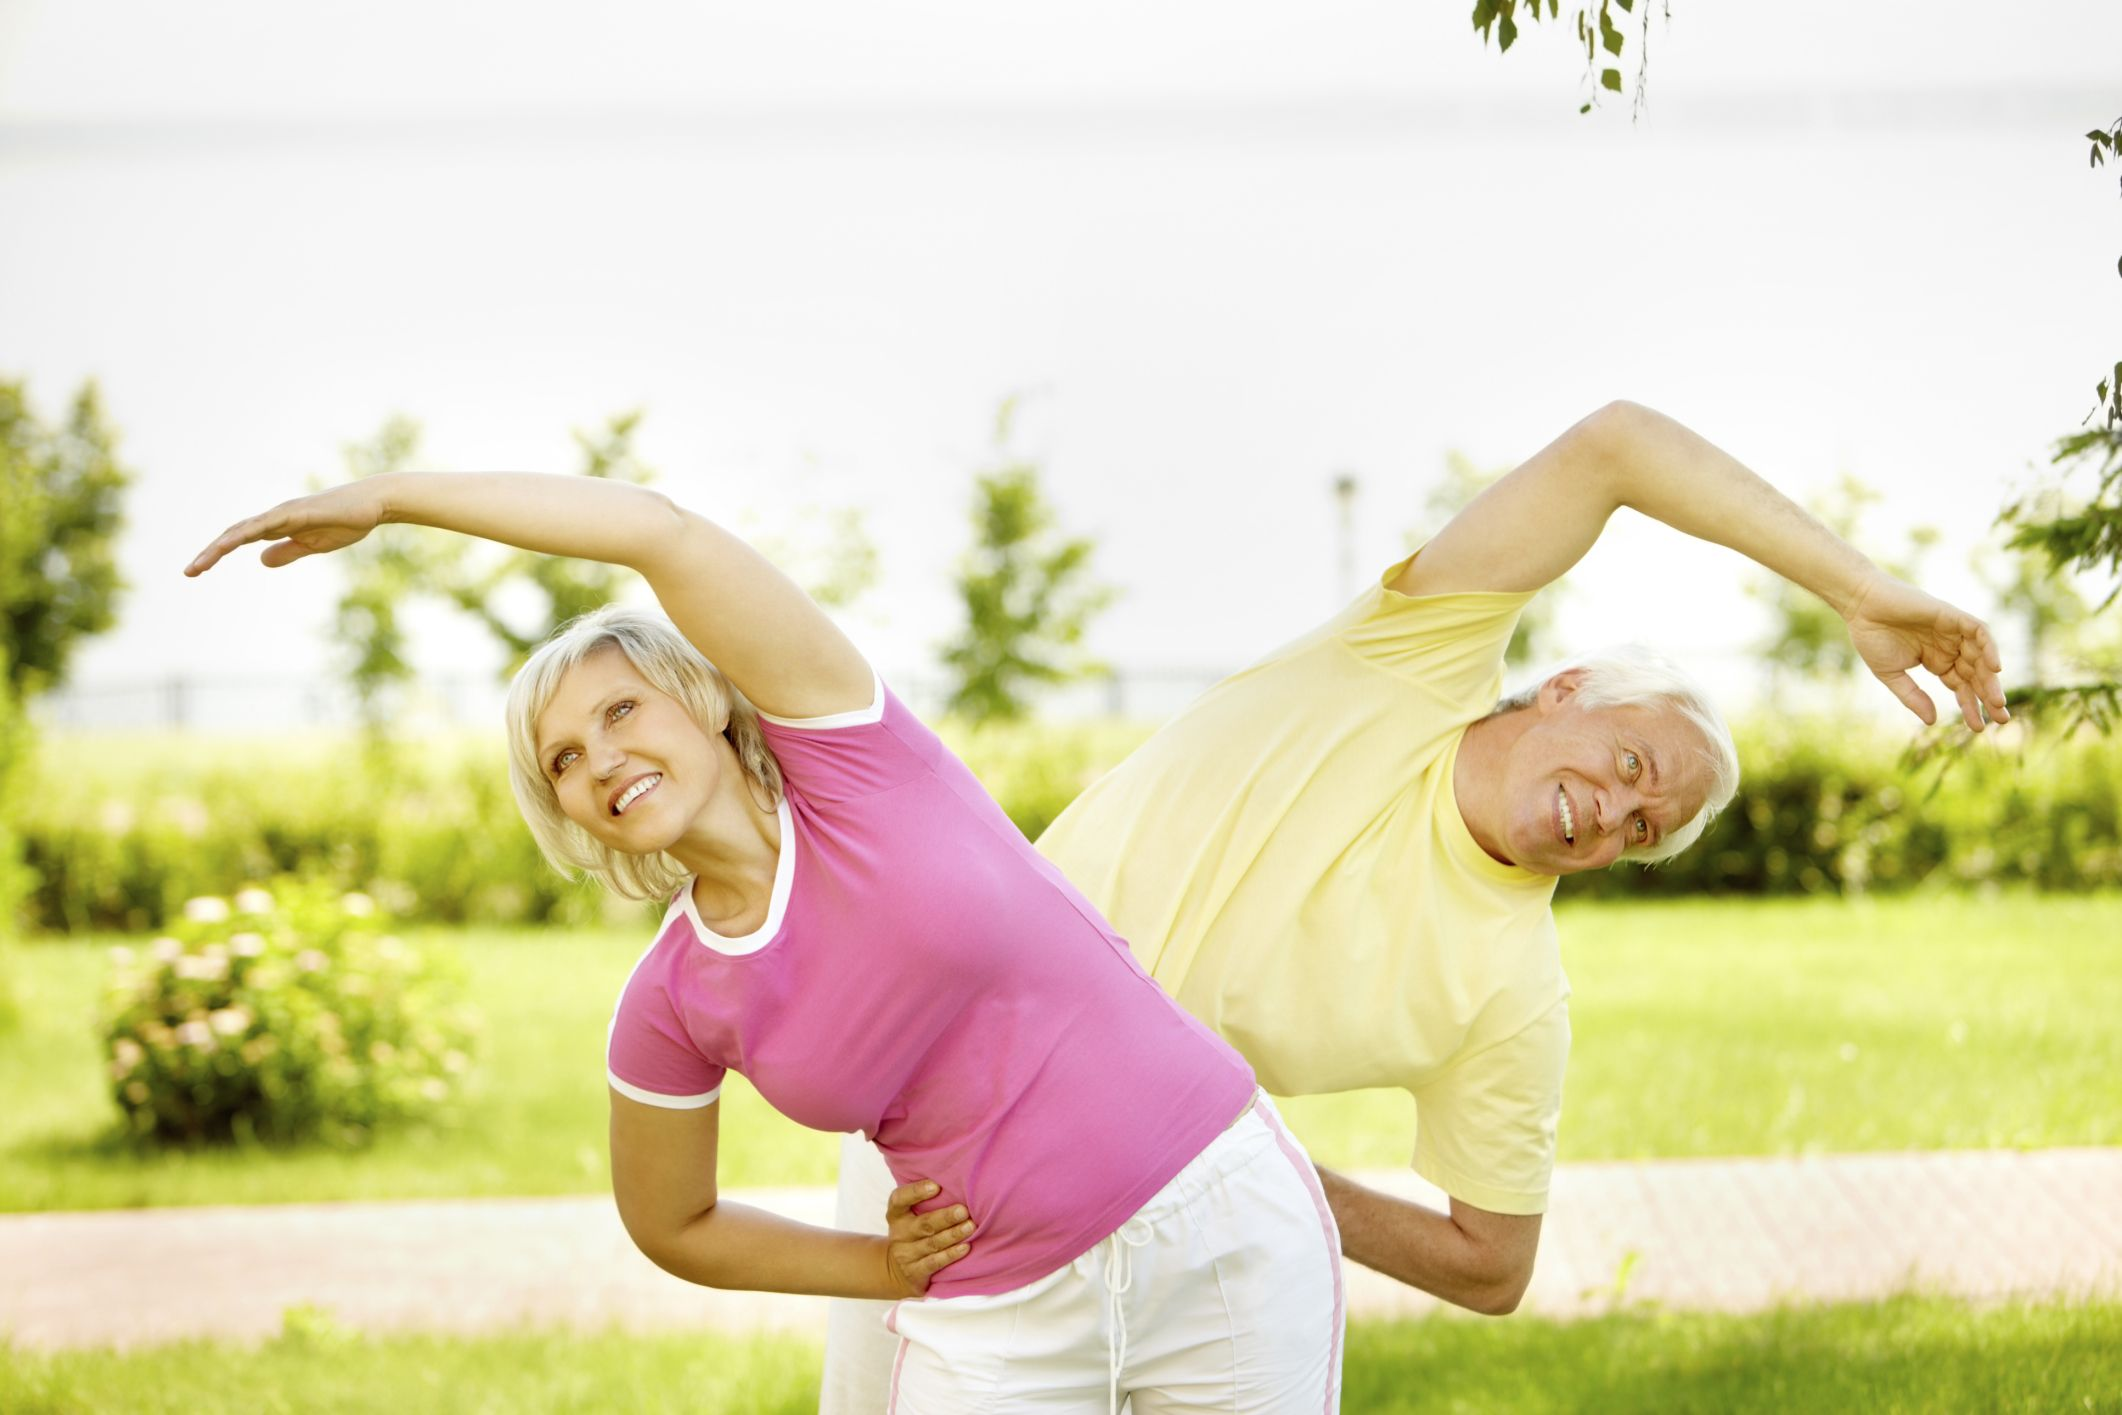 Exercise Misconception 3 As an older adult, I've been